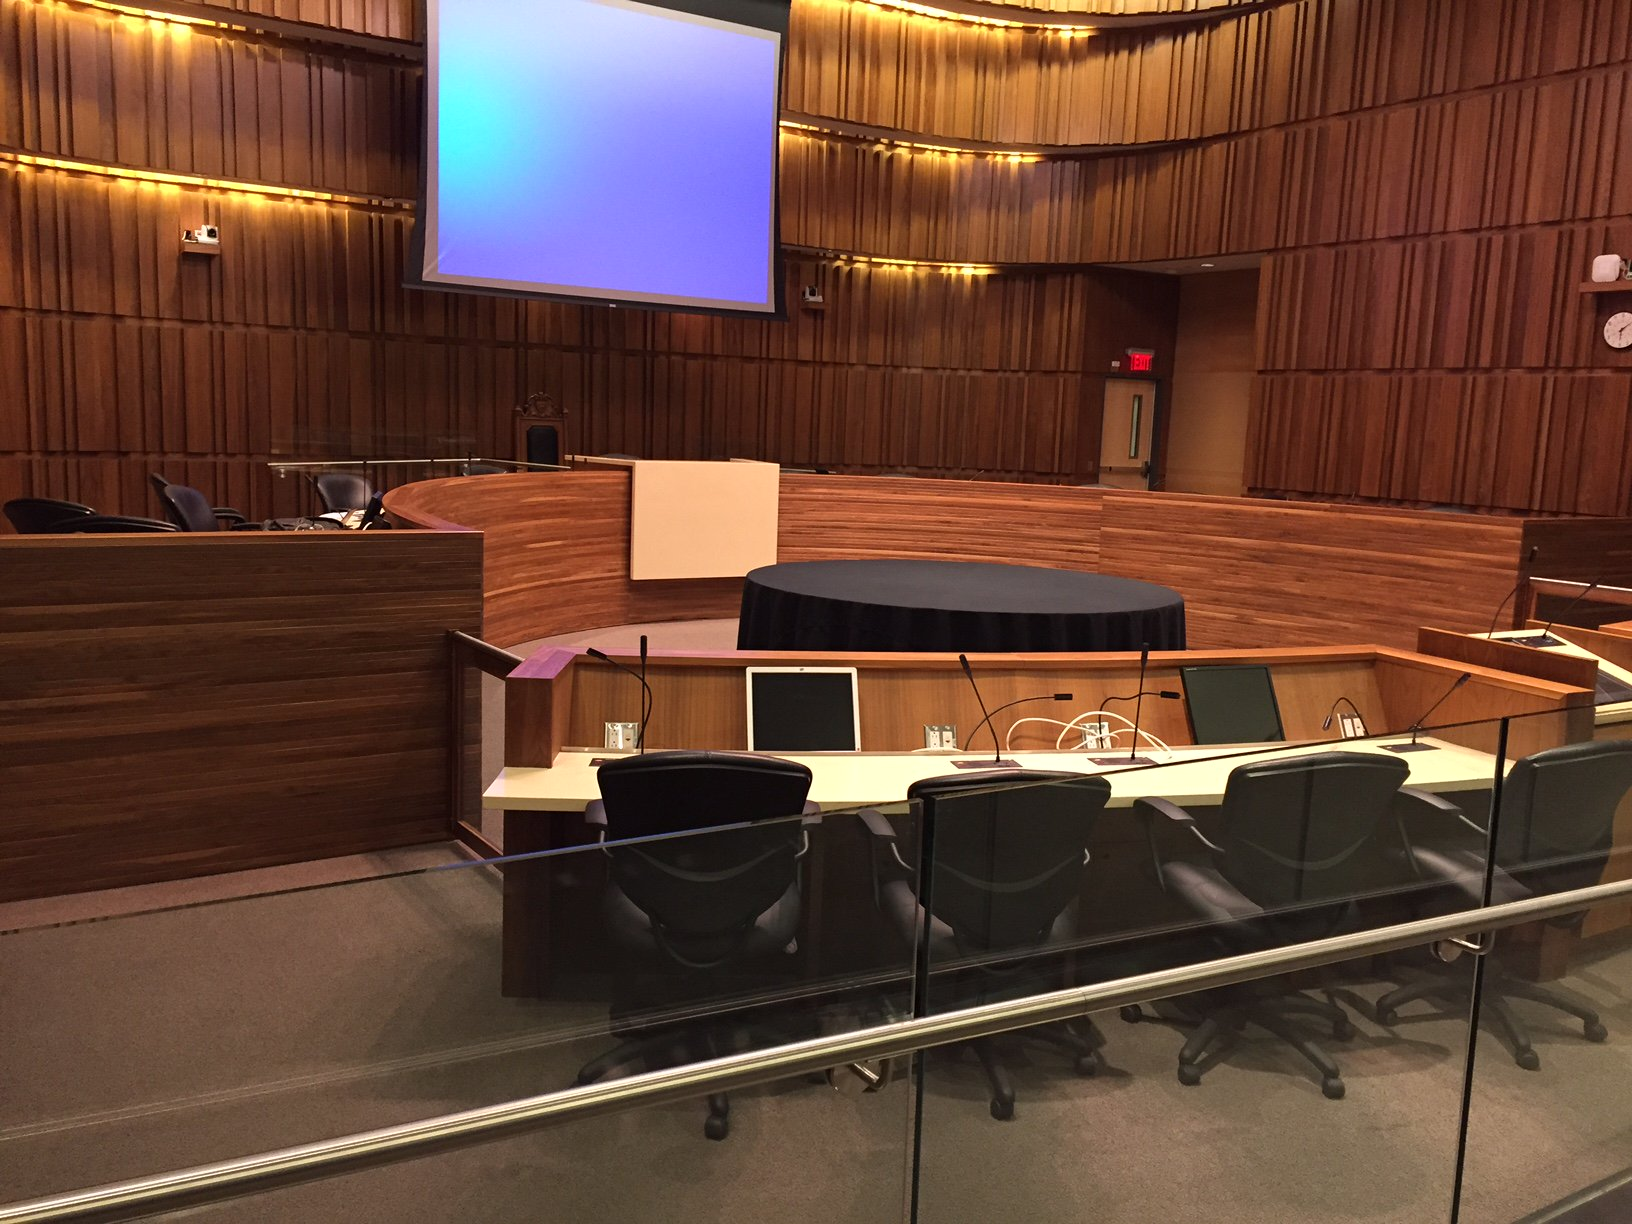 Council begins at 6:30. Here's what's on the agenda: https://t.co/pHQH90n8Pi #Guelph https://t.co/Z2trG3gQov